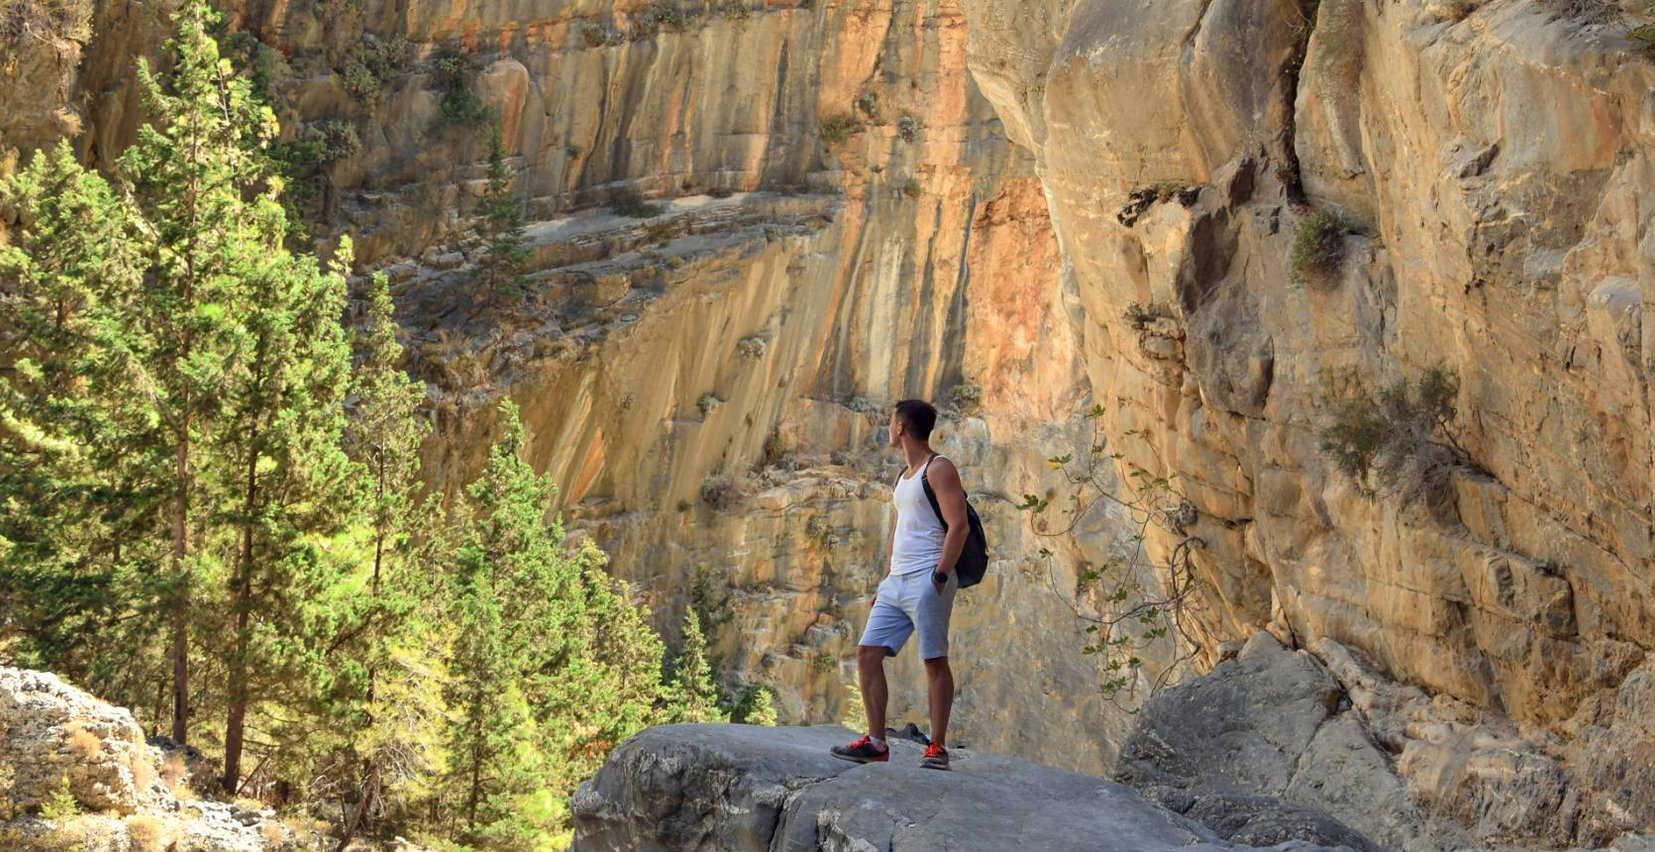 Man going hiking in the beautiful caves and mountains near Mala VIlla